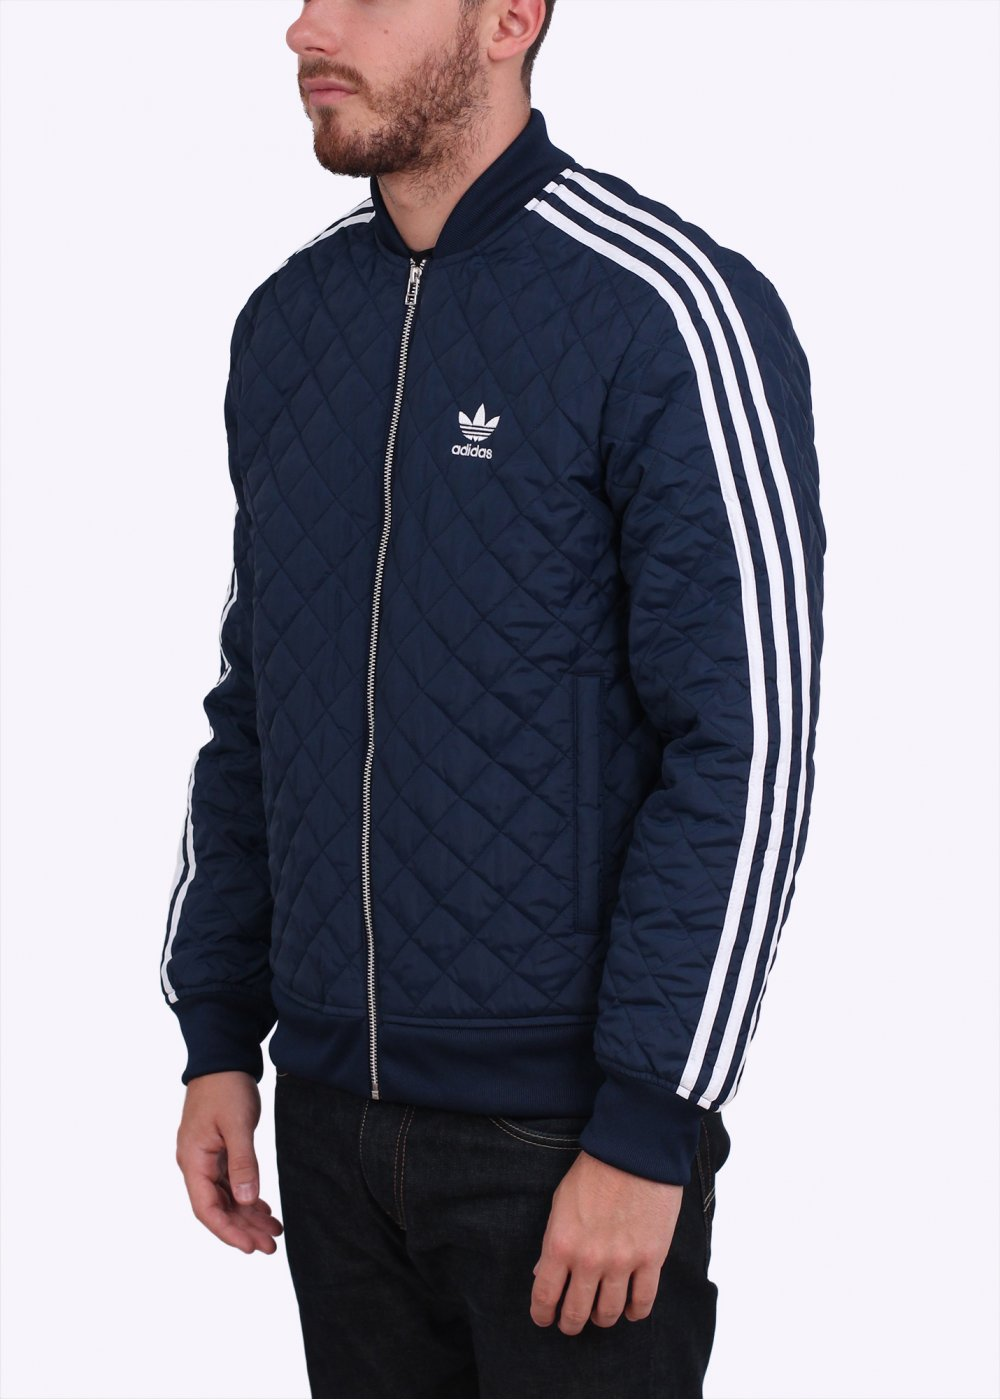 adidas originals quilted sst superstar bomber jacket navy blue. Black Bedroom Furniture Sets. Home Design Ideas